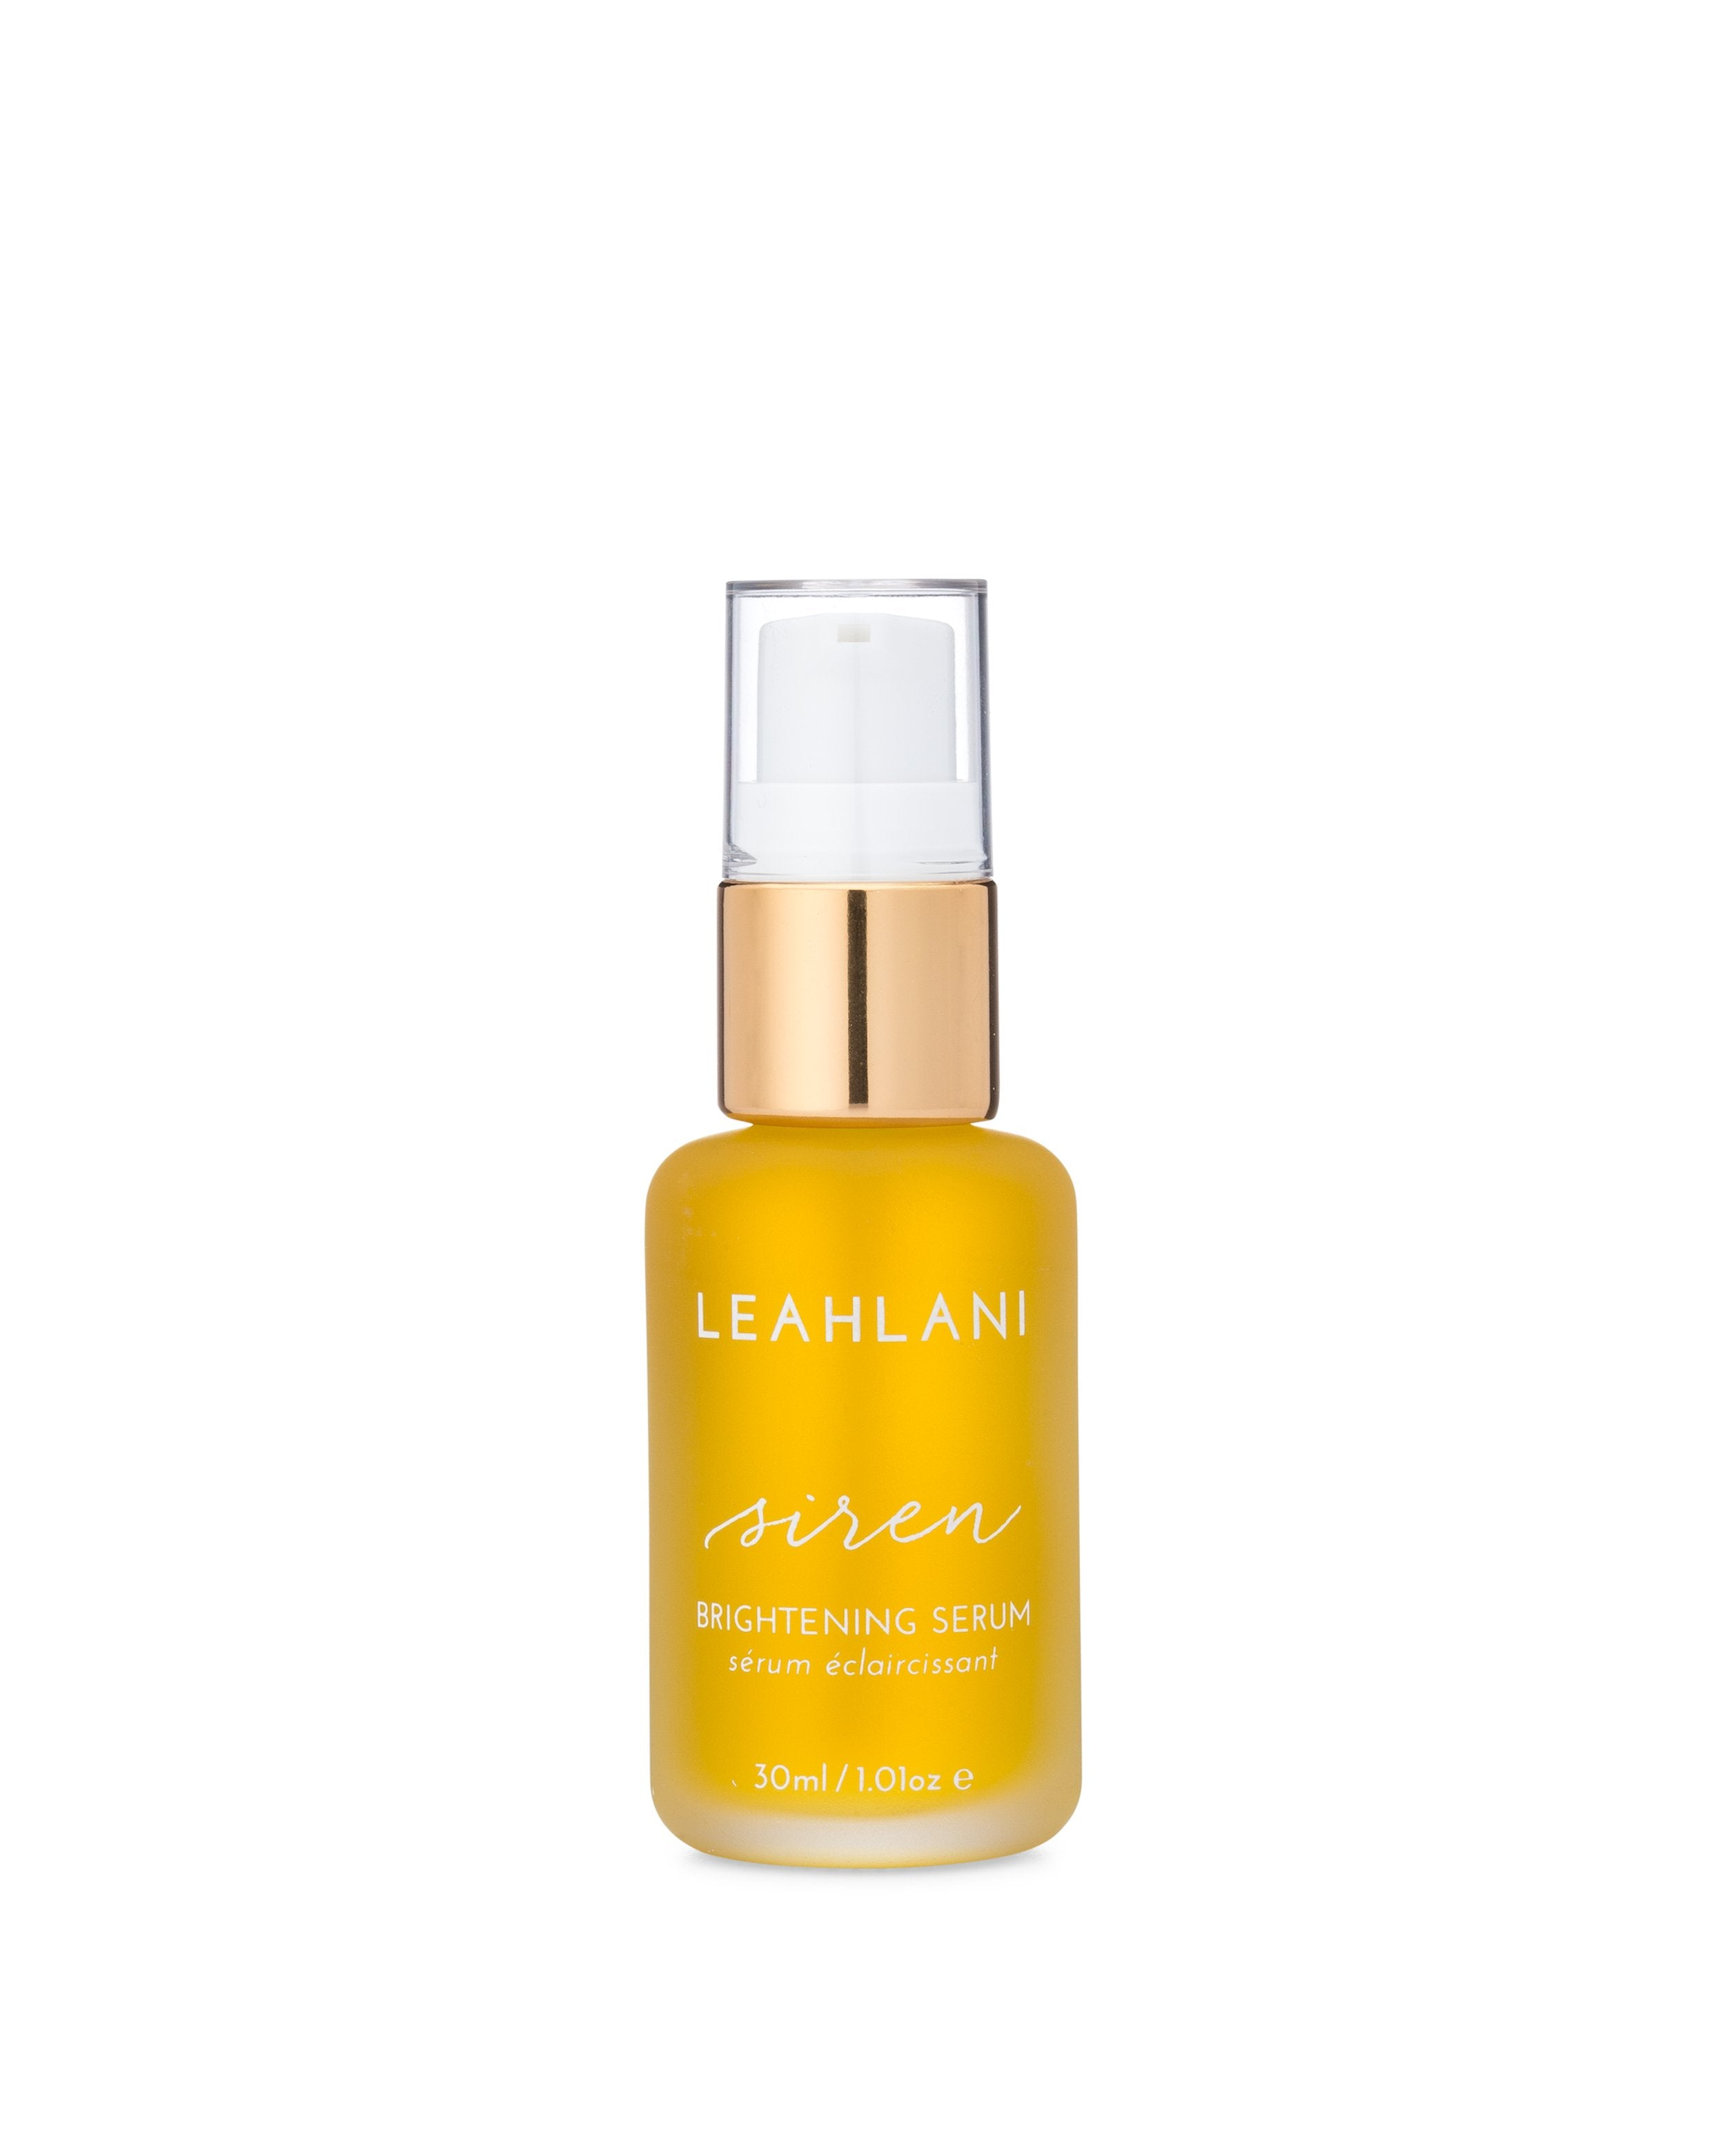 Siren Brightening Serum